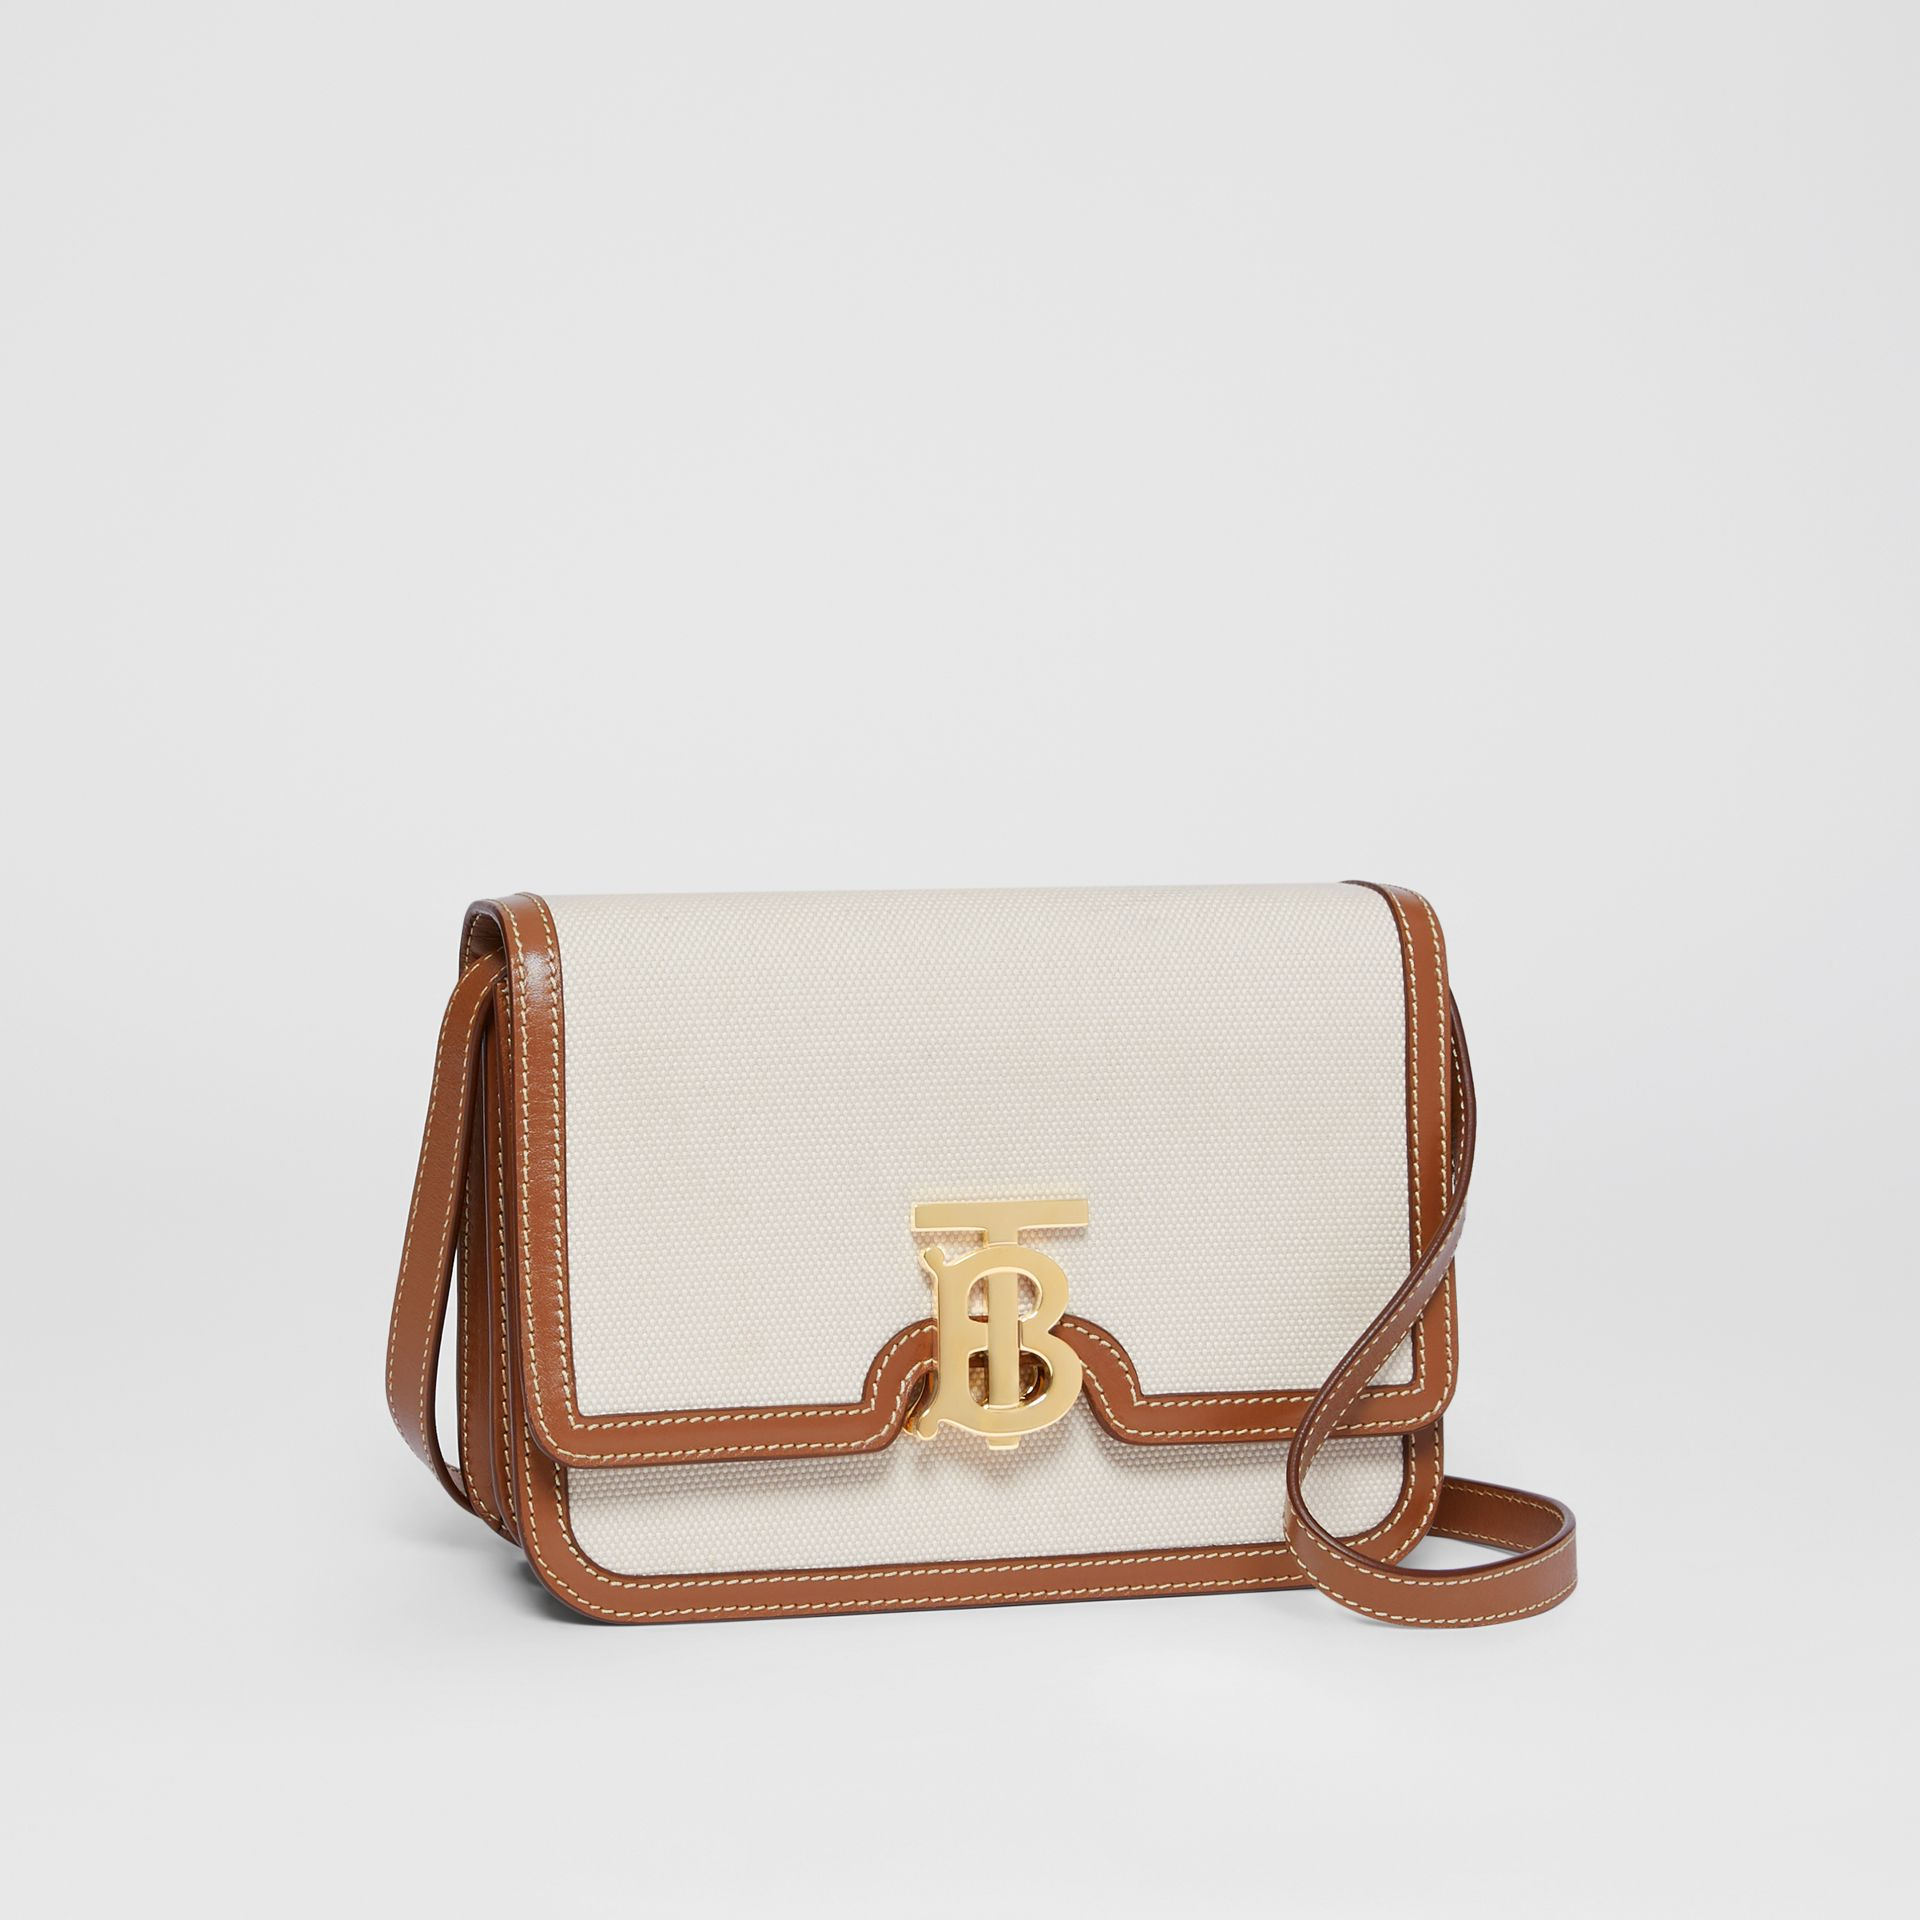 Small Two-tone Canvas and Leather TB Bag in Natural/malt Brown | Burberry - gallery image 5